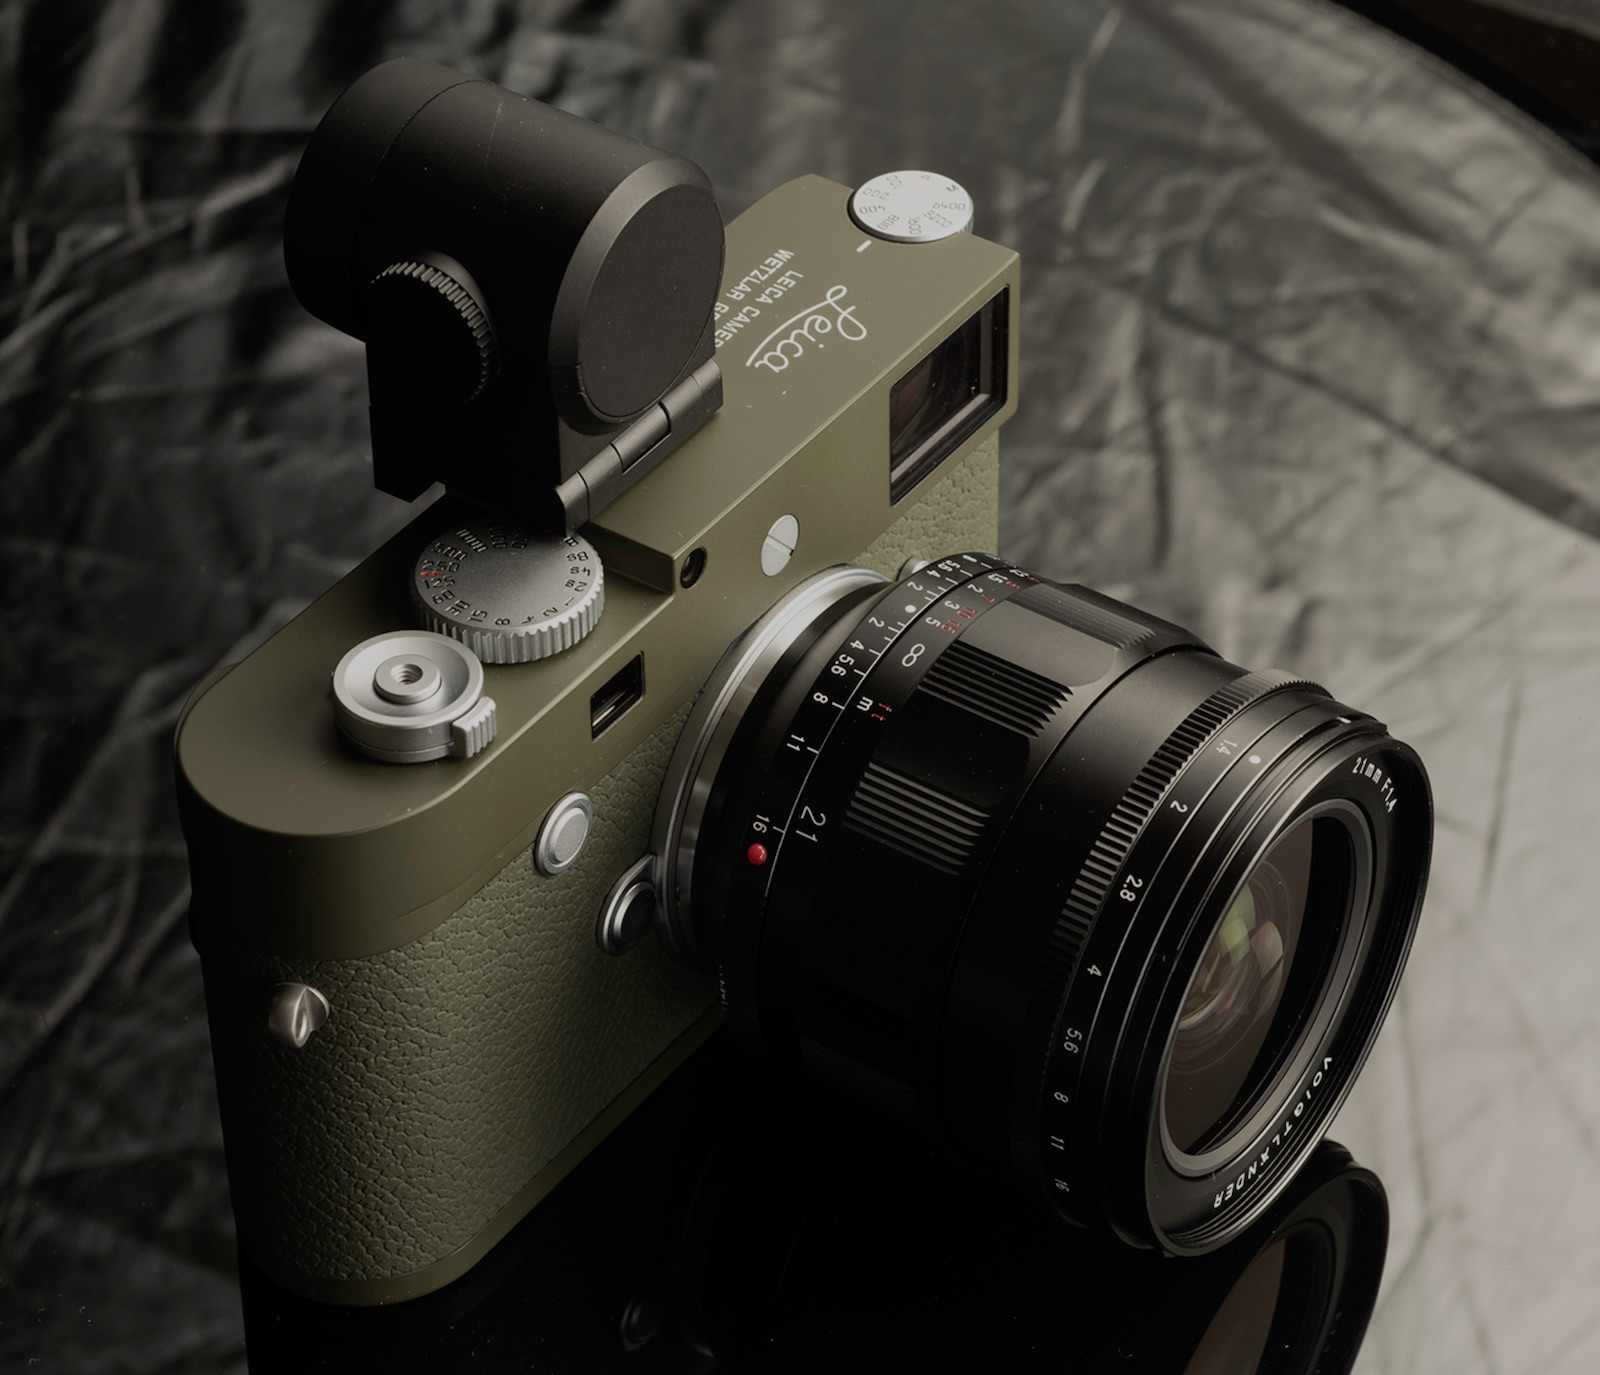 The new Voigtlander Nokton 21mm f/1.4 Aspherical VM lens for Leica M-mount is now in stock in the US - Leica Rumors